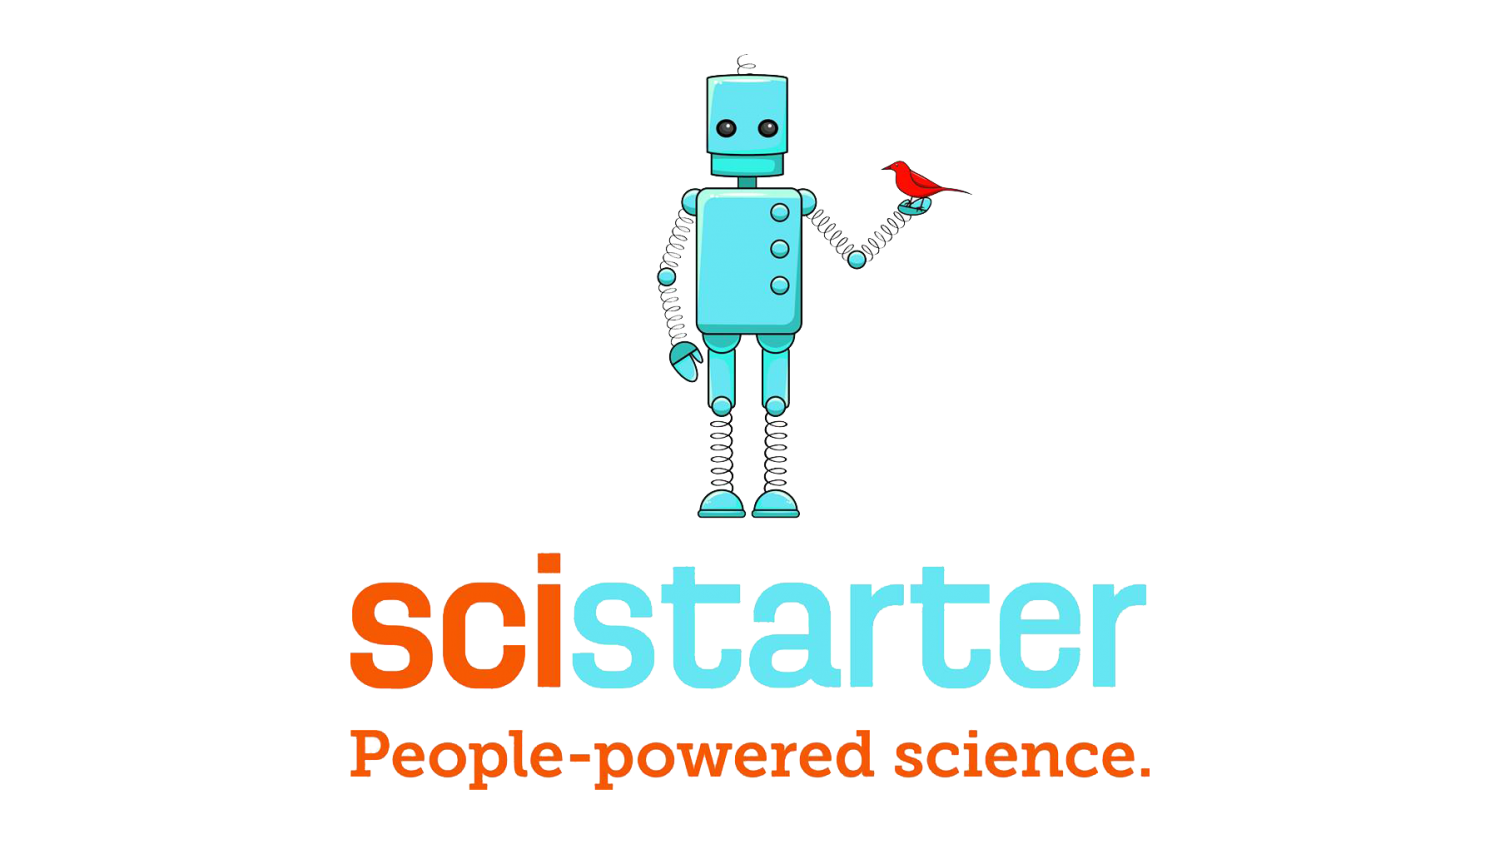 SciStarter: People-powered science.